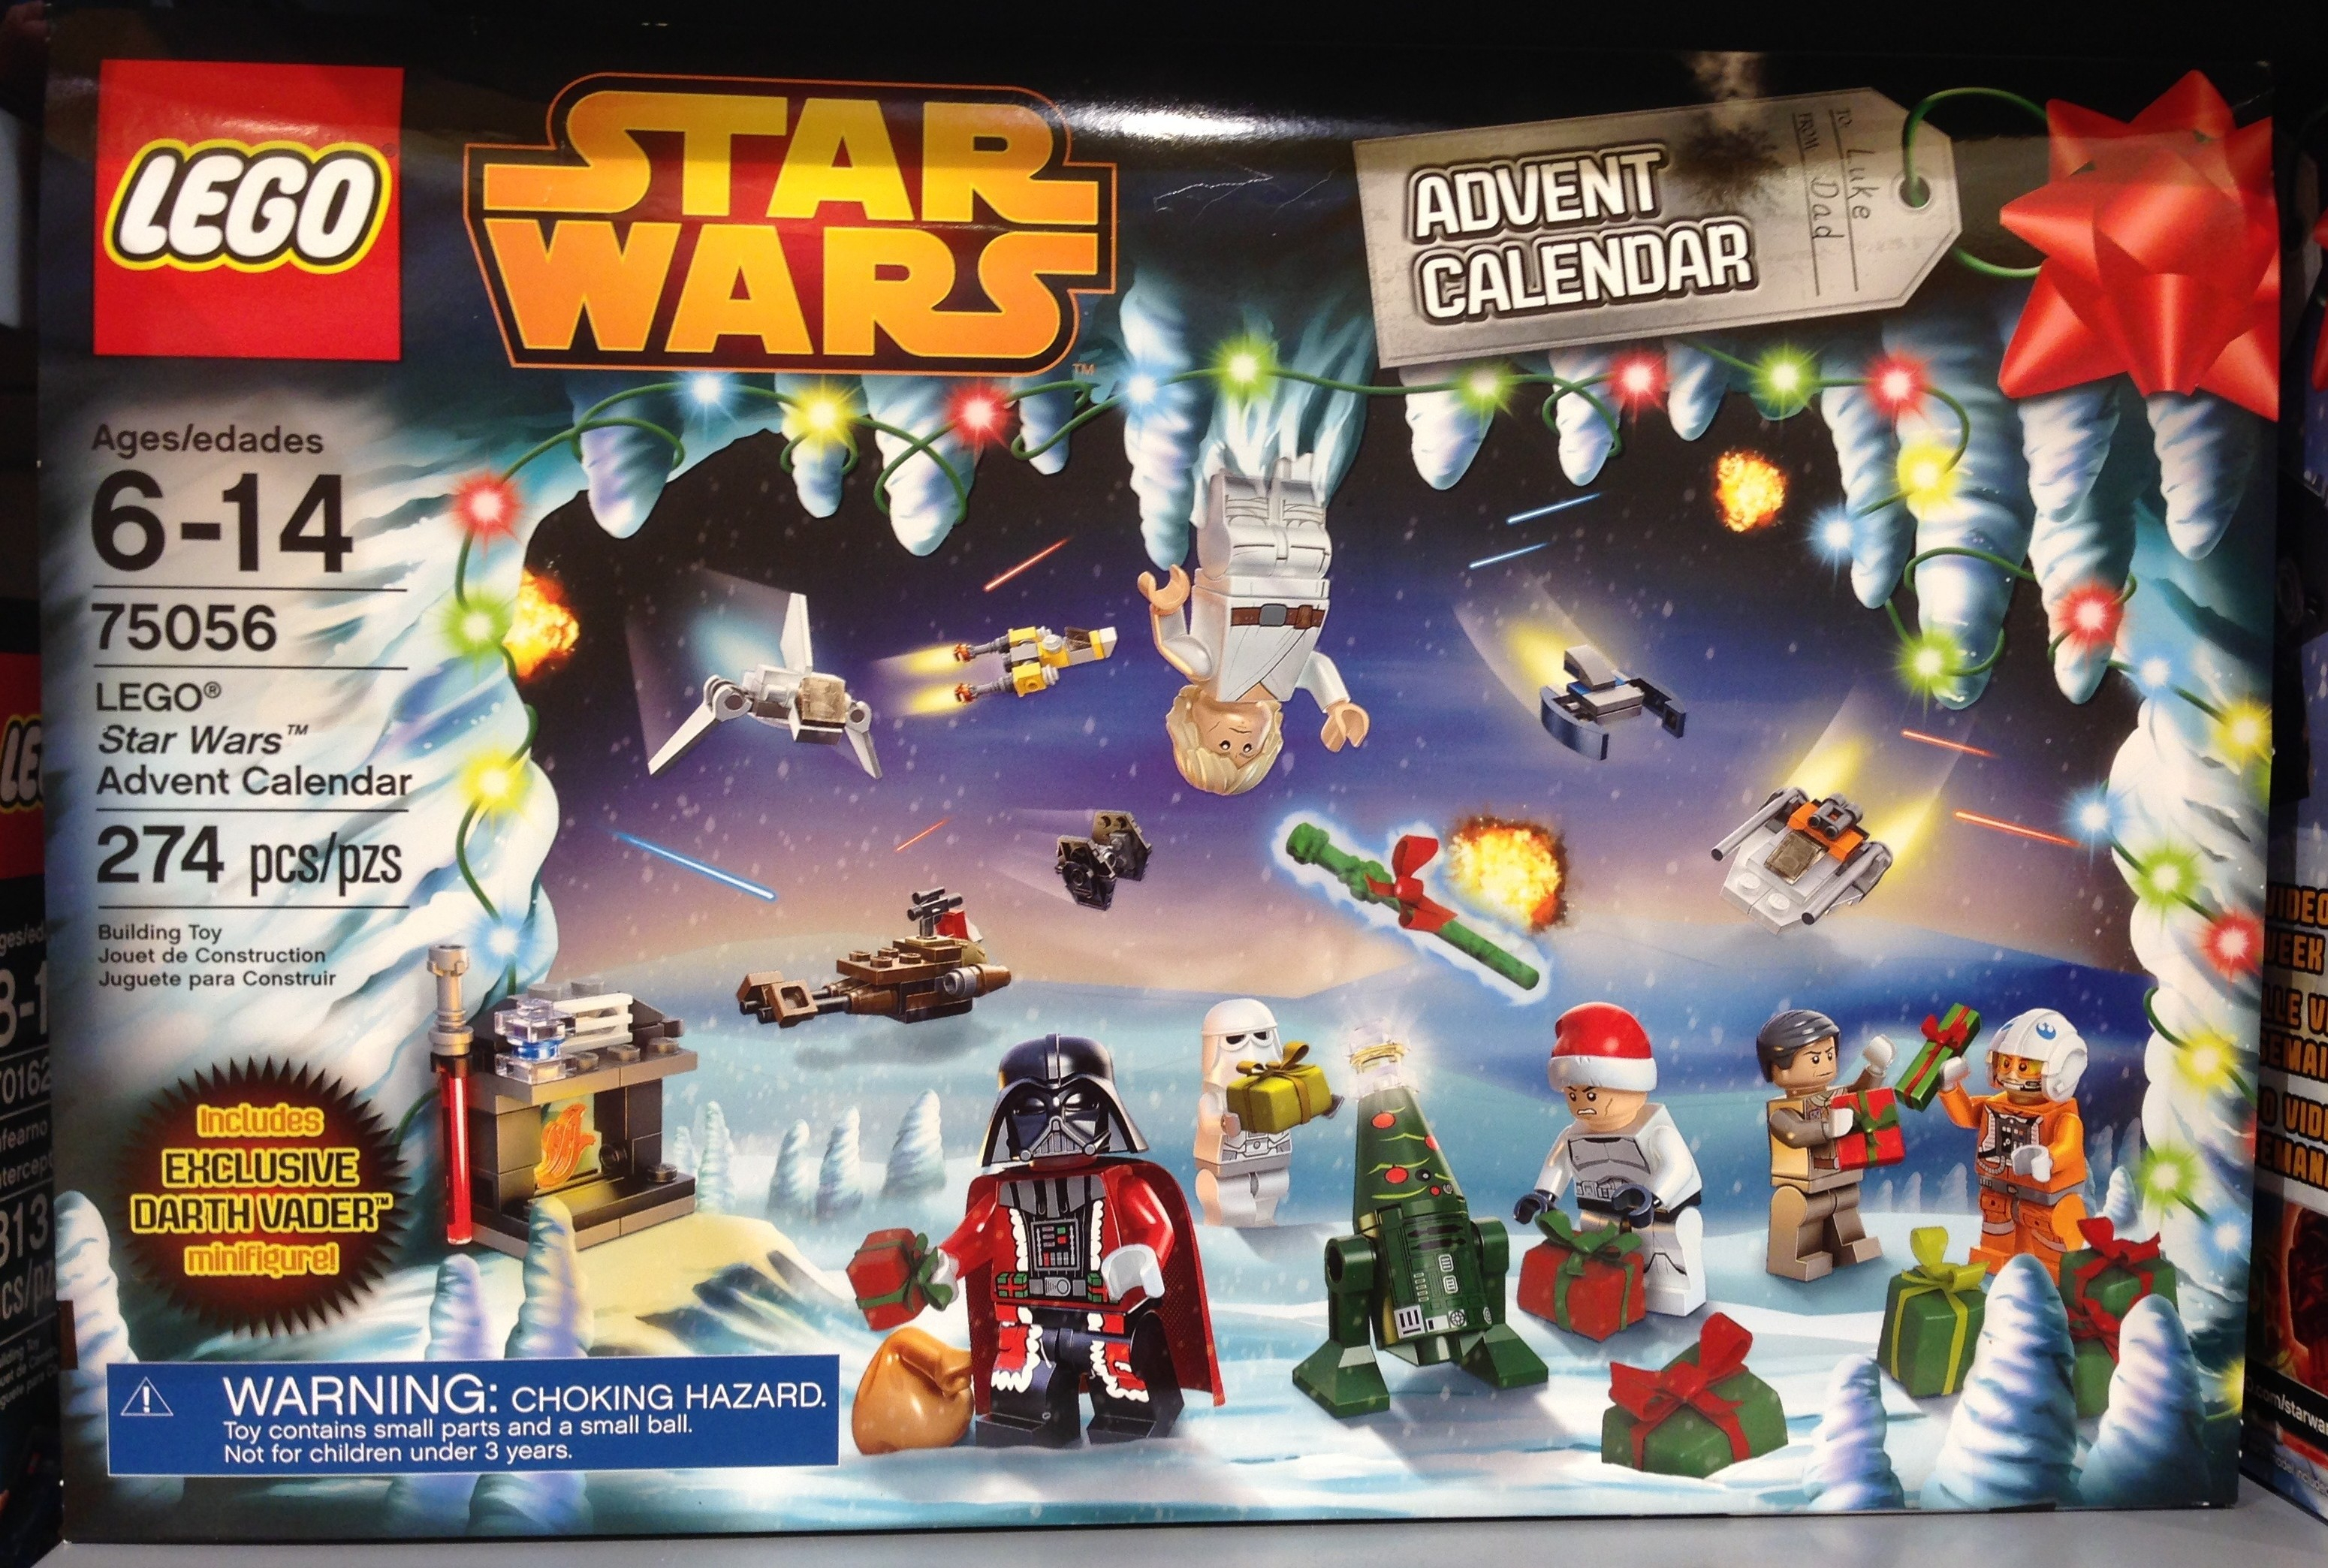 Lego Star Wars 2014 Advent Calendar Released In Stores with Star Wars Advent Calendar 2013